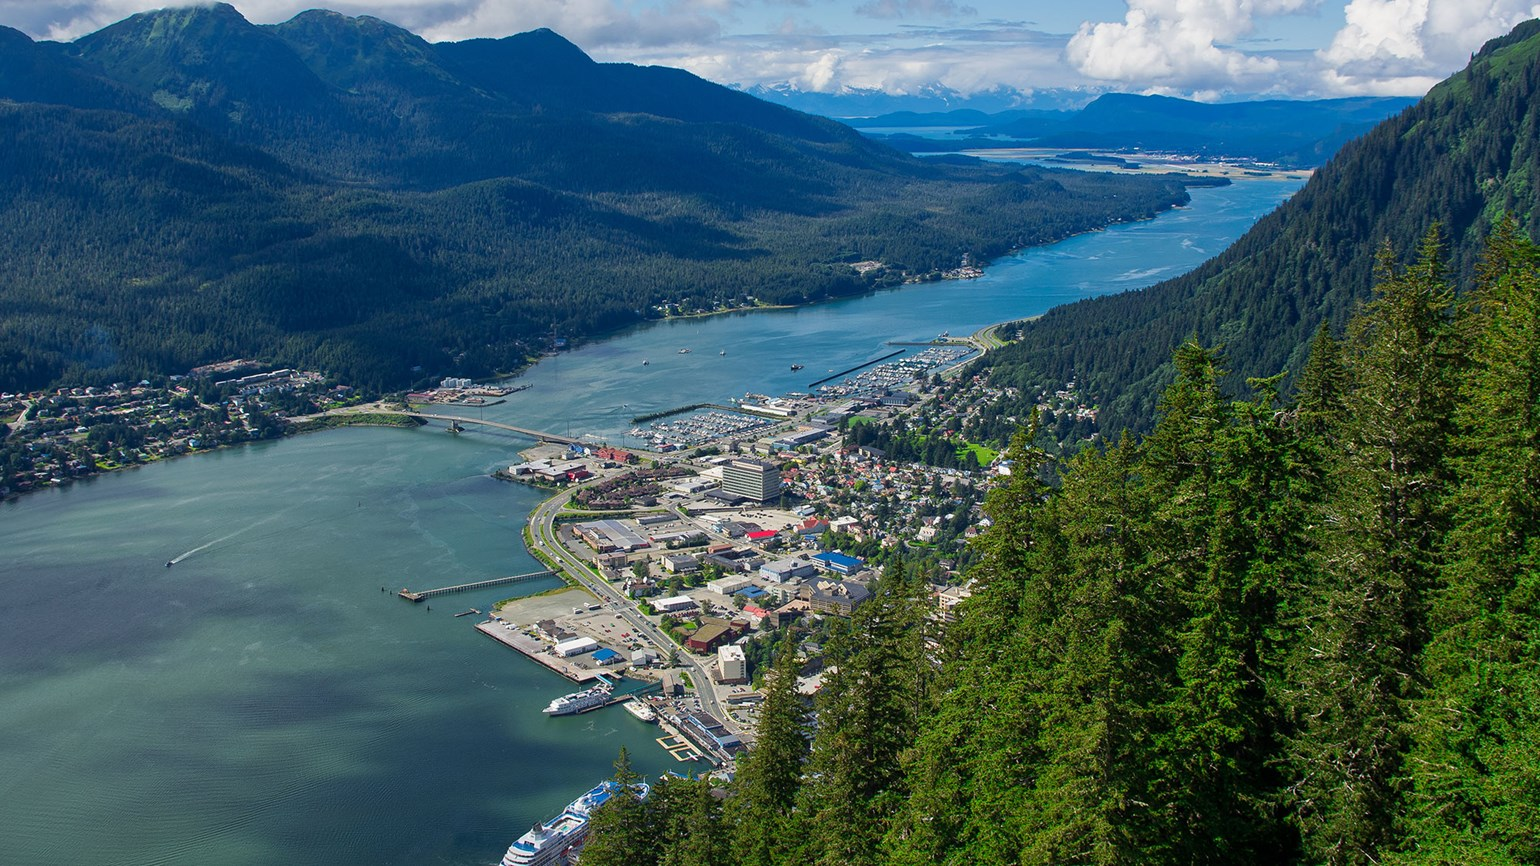 Norwegian has big plans for Juneau, but is the city open to more cruising?